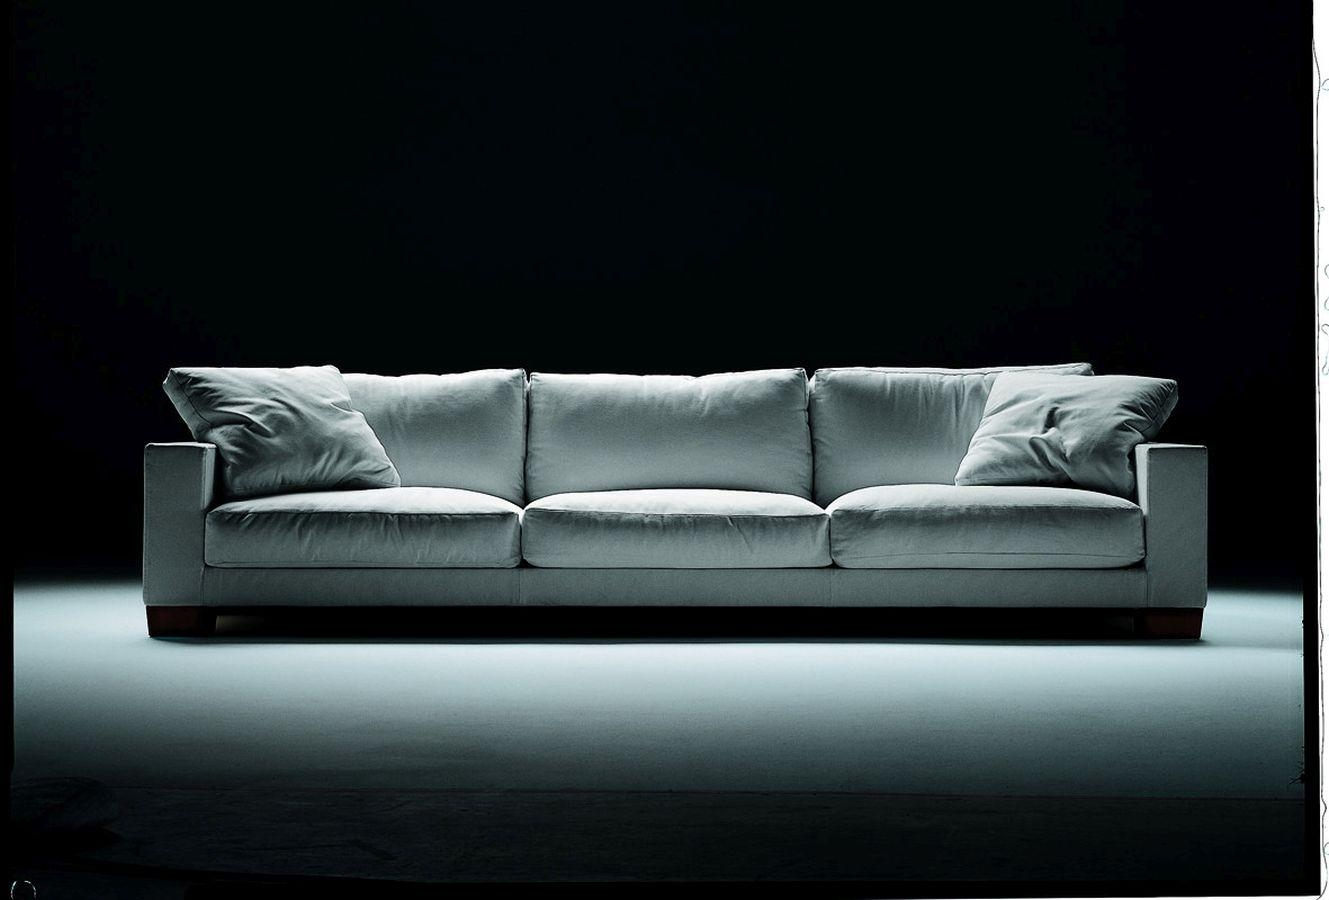 Product Categories Sofas / Sectional Sofas | Flexform Nyc Within Flexform Sofas (Image 17 of 20)